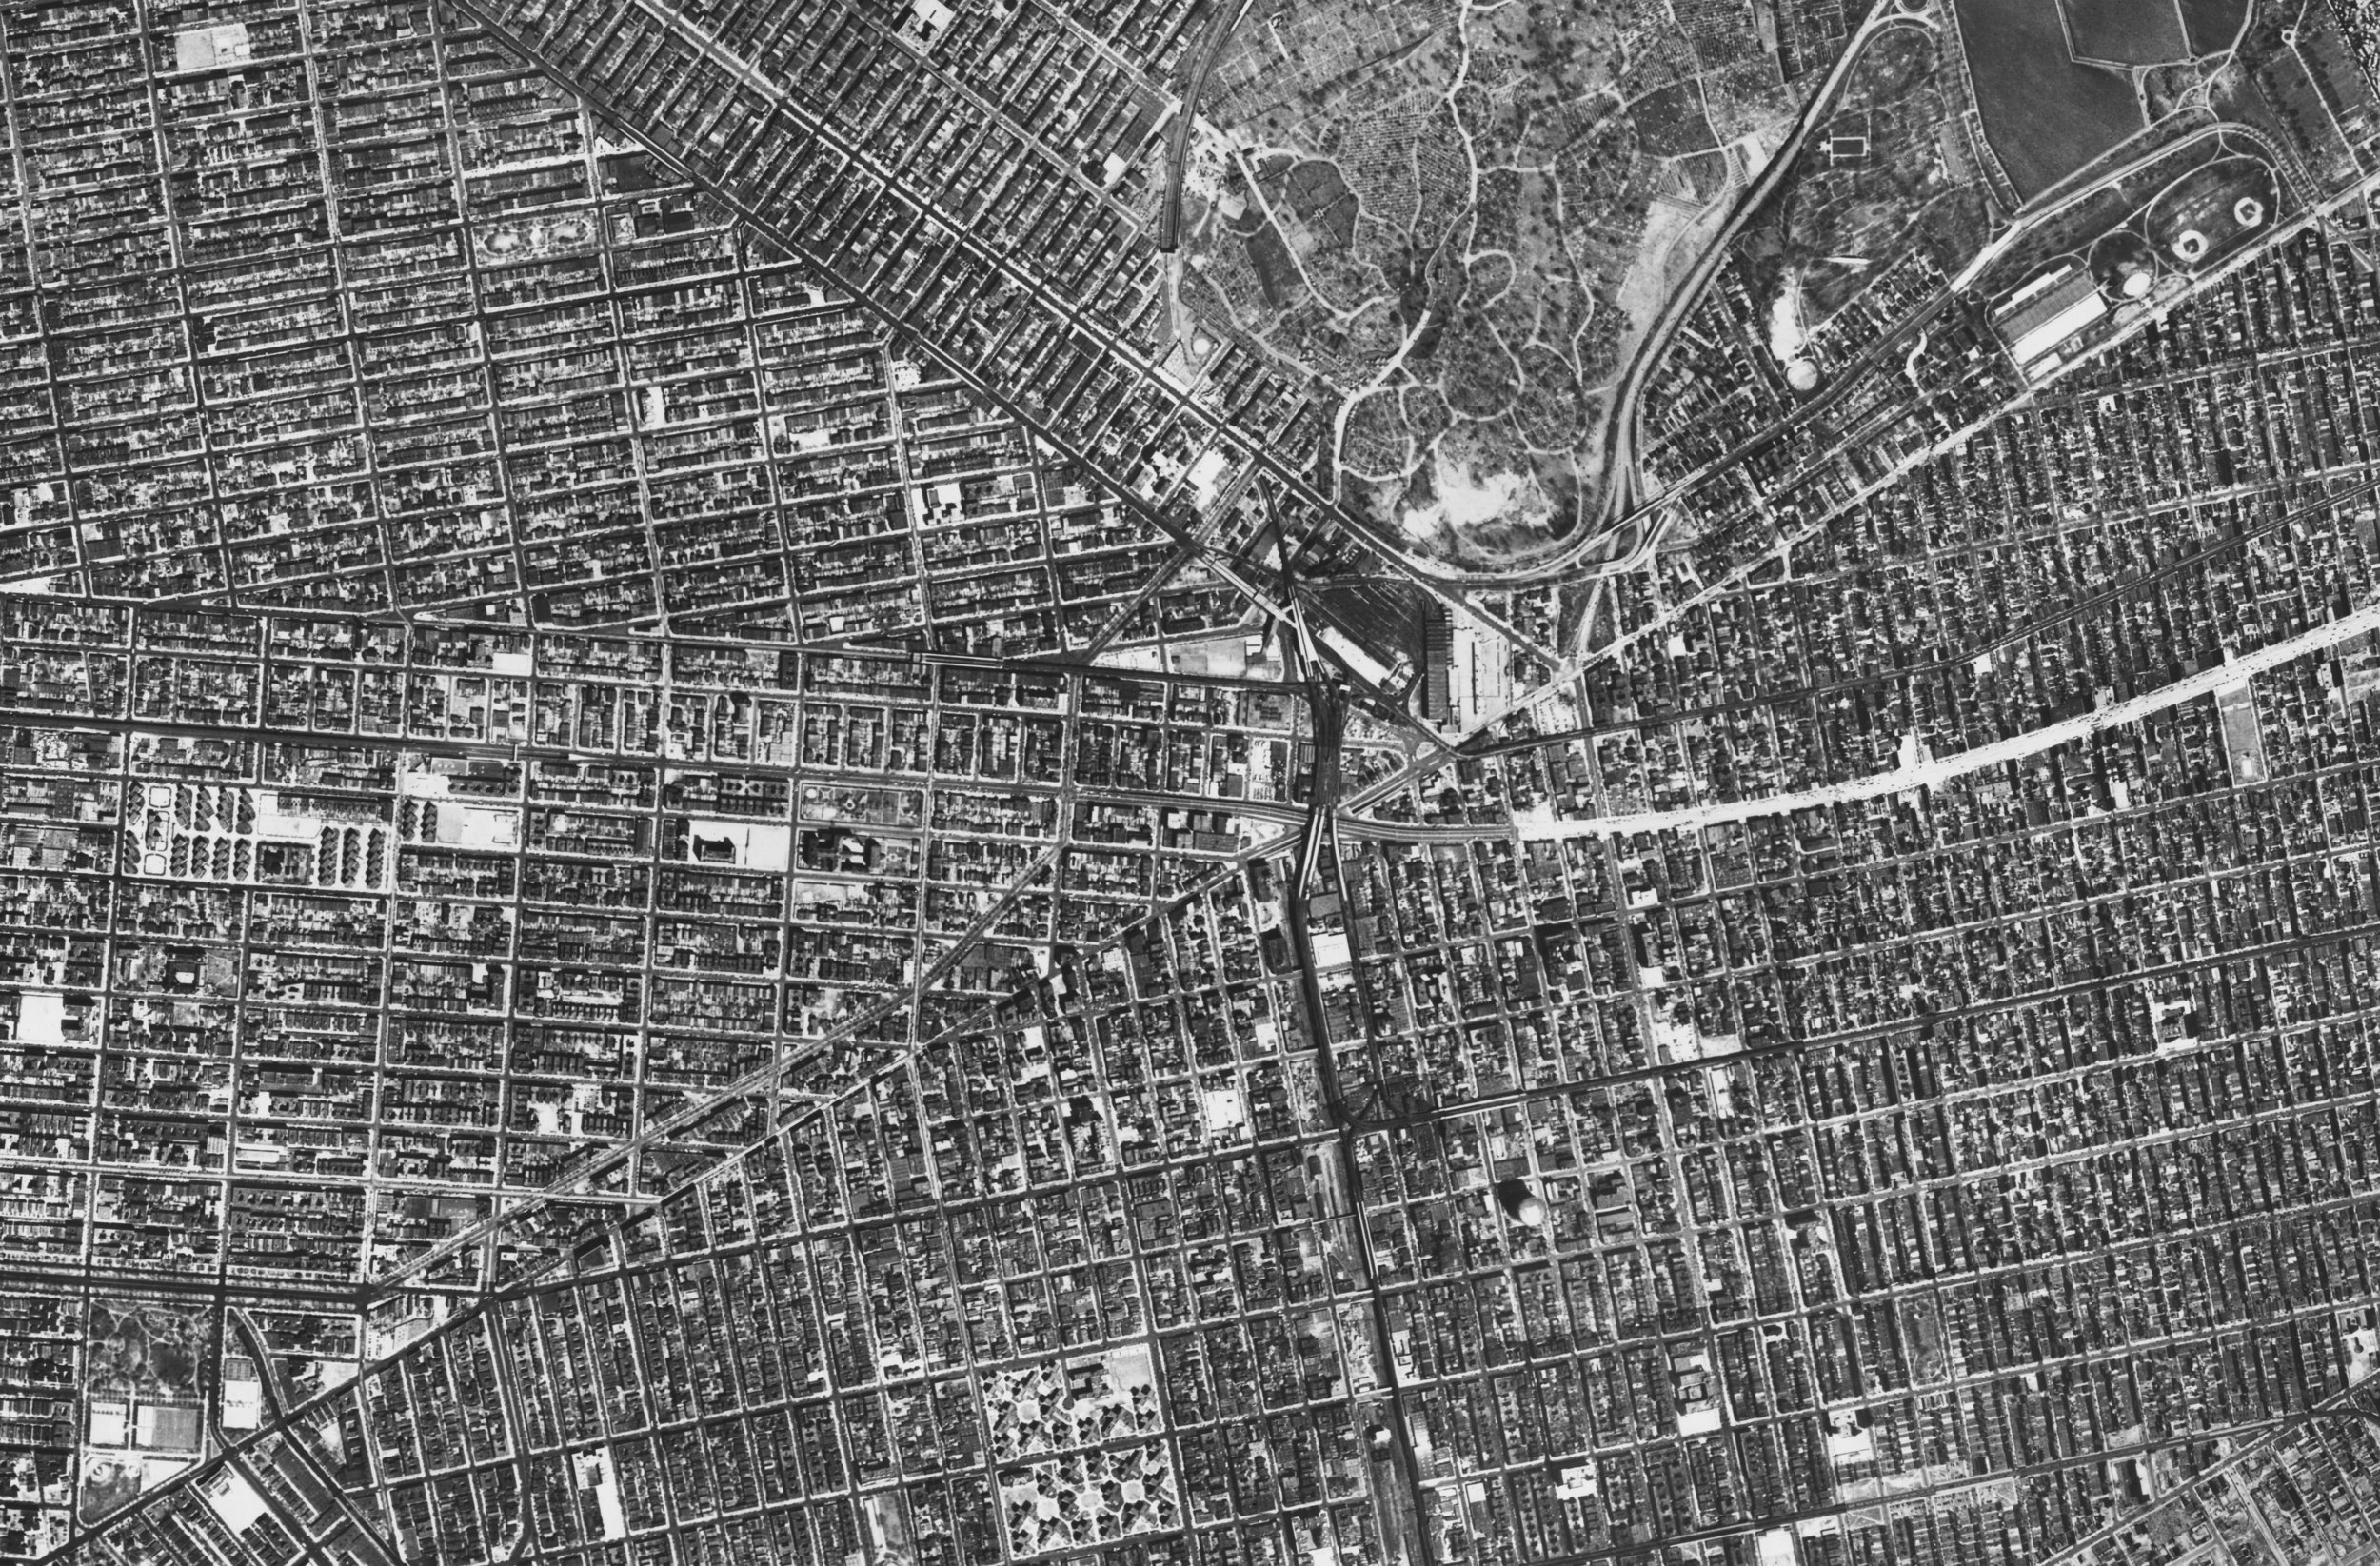 Sectional Aerial Map of the City of New York, Plate No. 17, Brownsville, East New York, Brooklyn. Aero Service Corp. 1951. NYC Municipal Archives